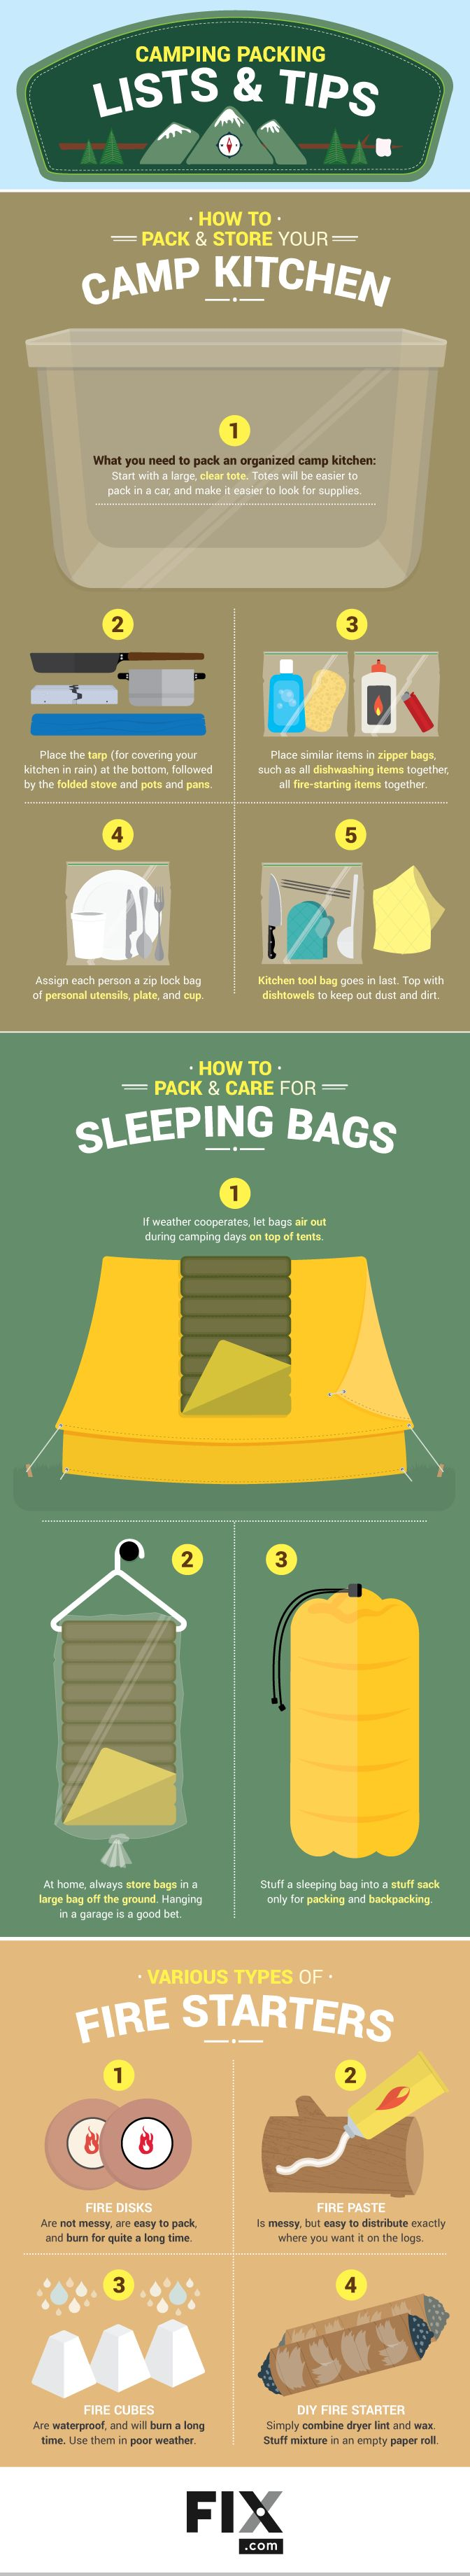 Camping Packing Lists and Tips Everything You Need to Bring to the Campsite #Camping